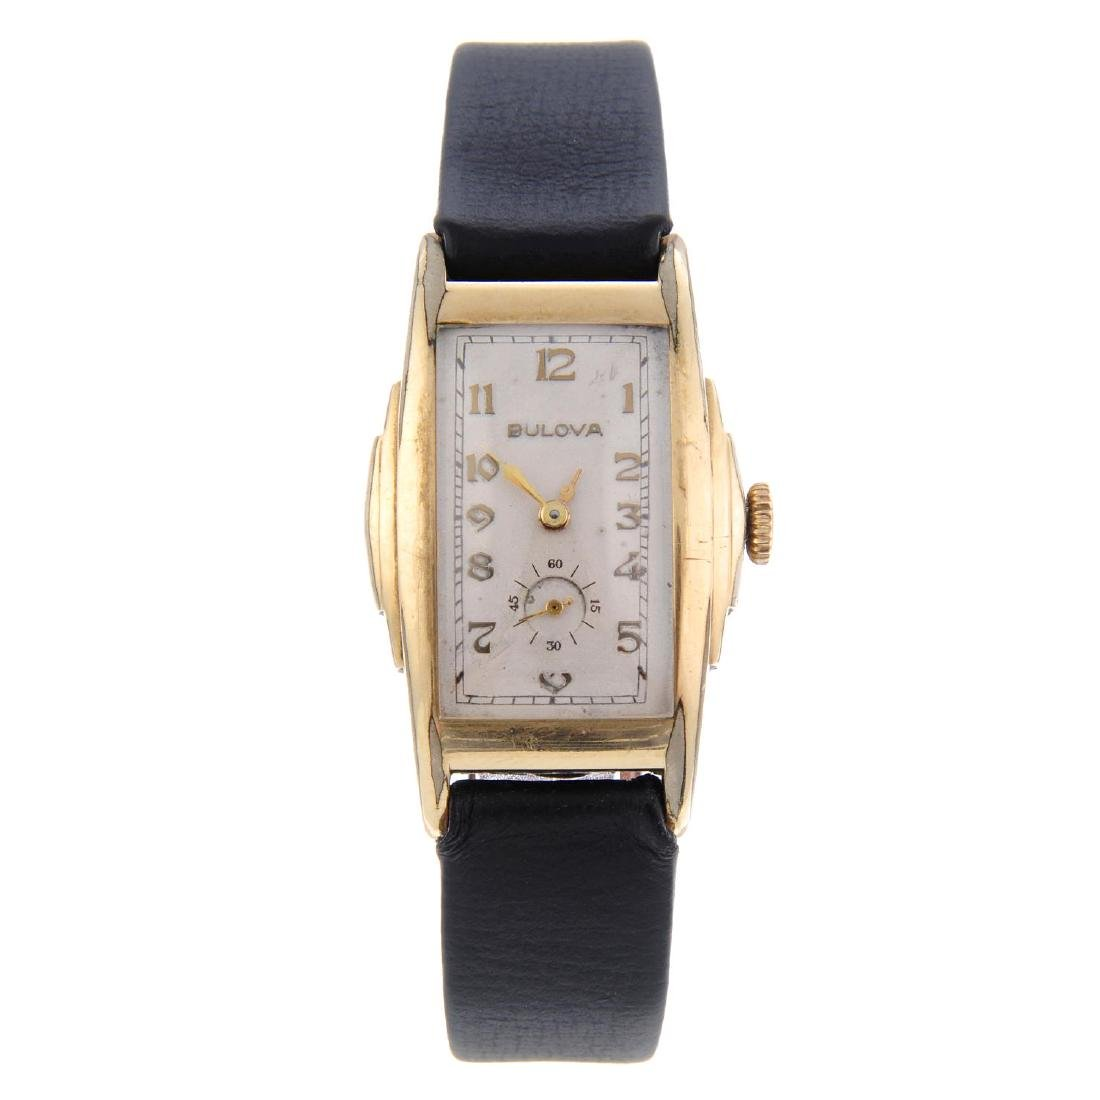 BULOVA - a gentleman's wrist watch. Gold plated case